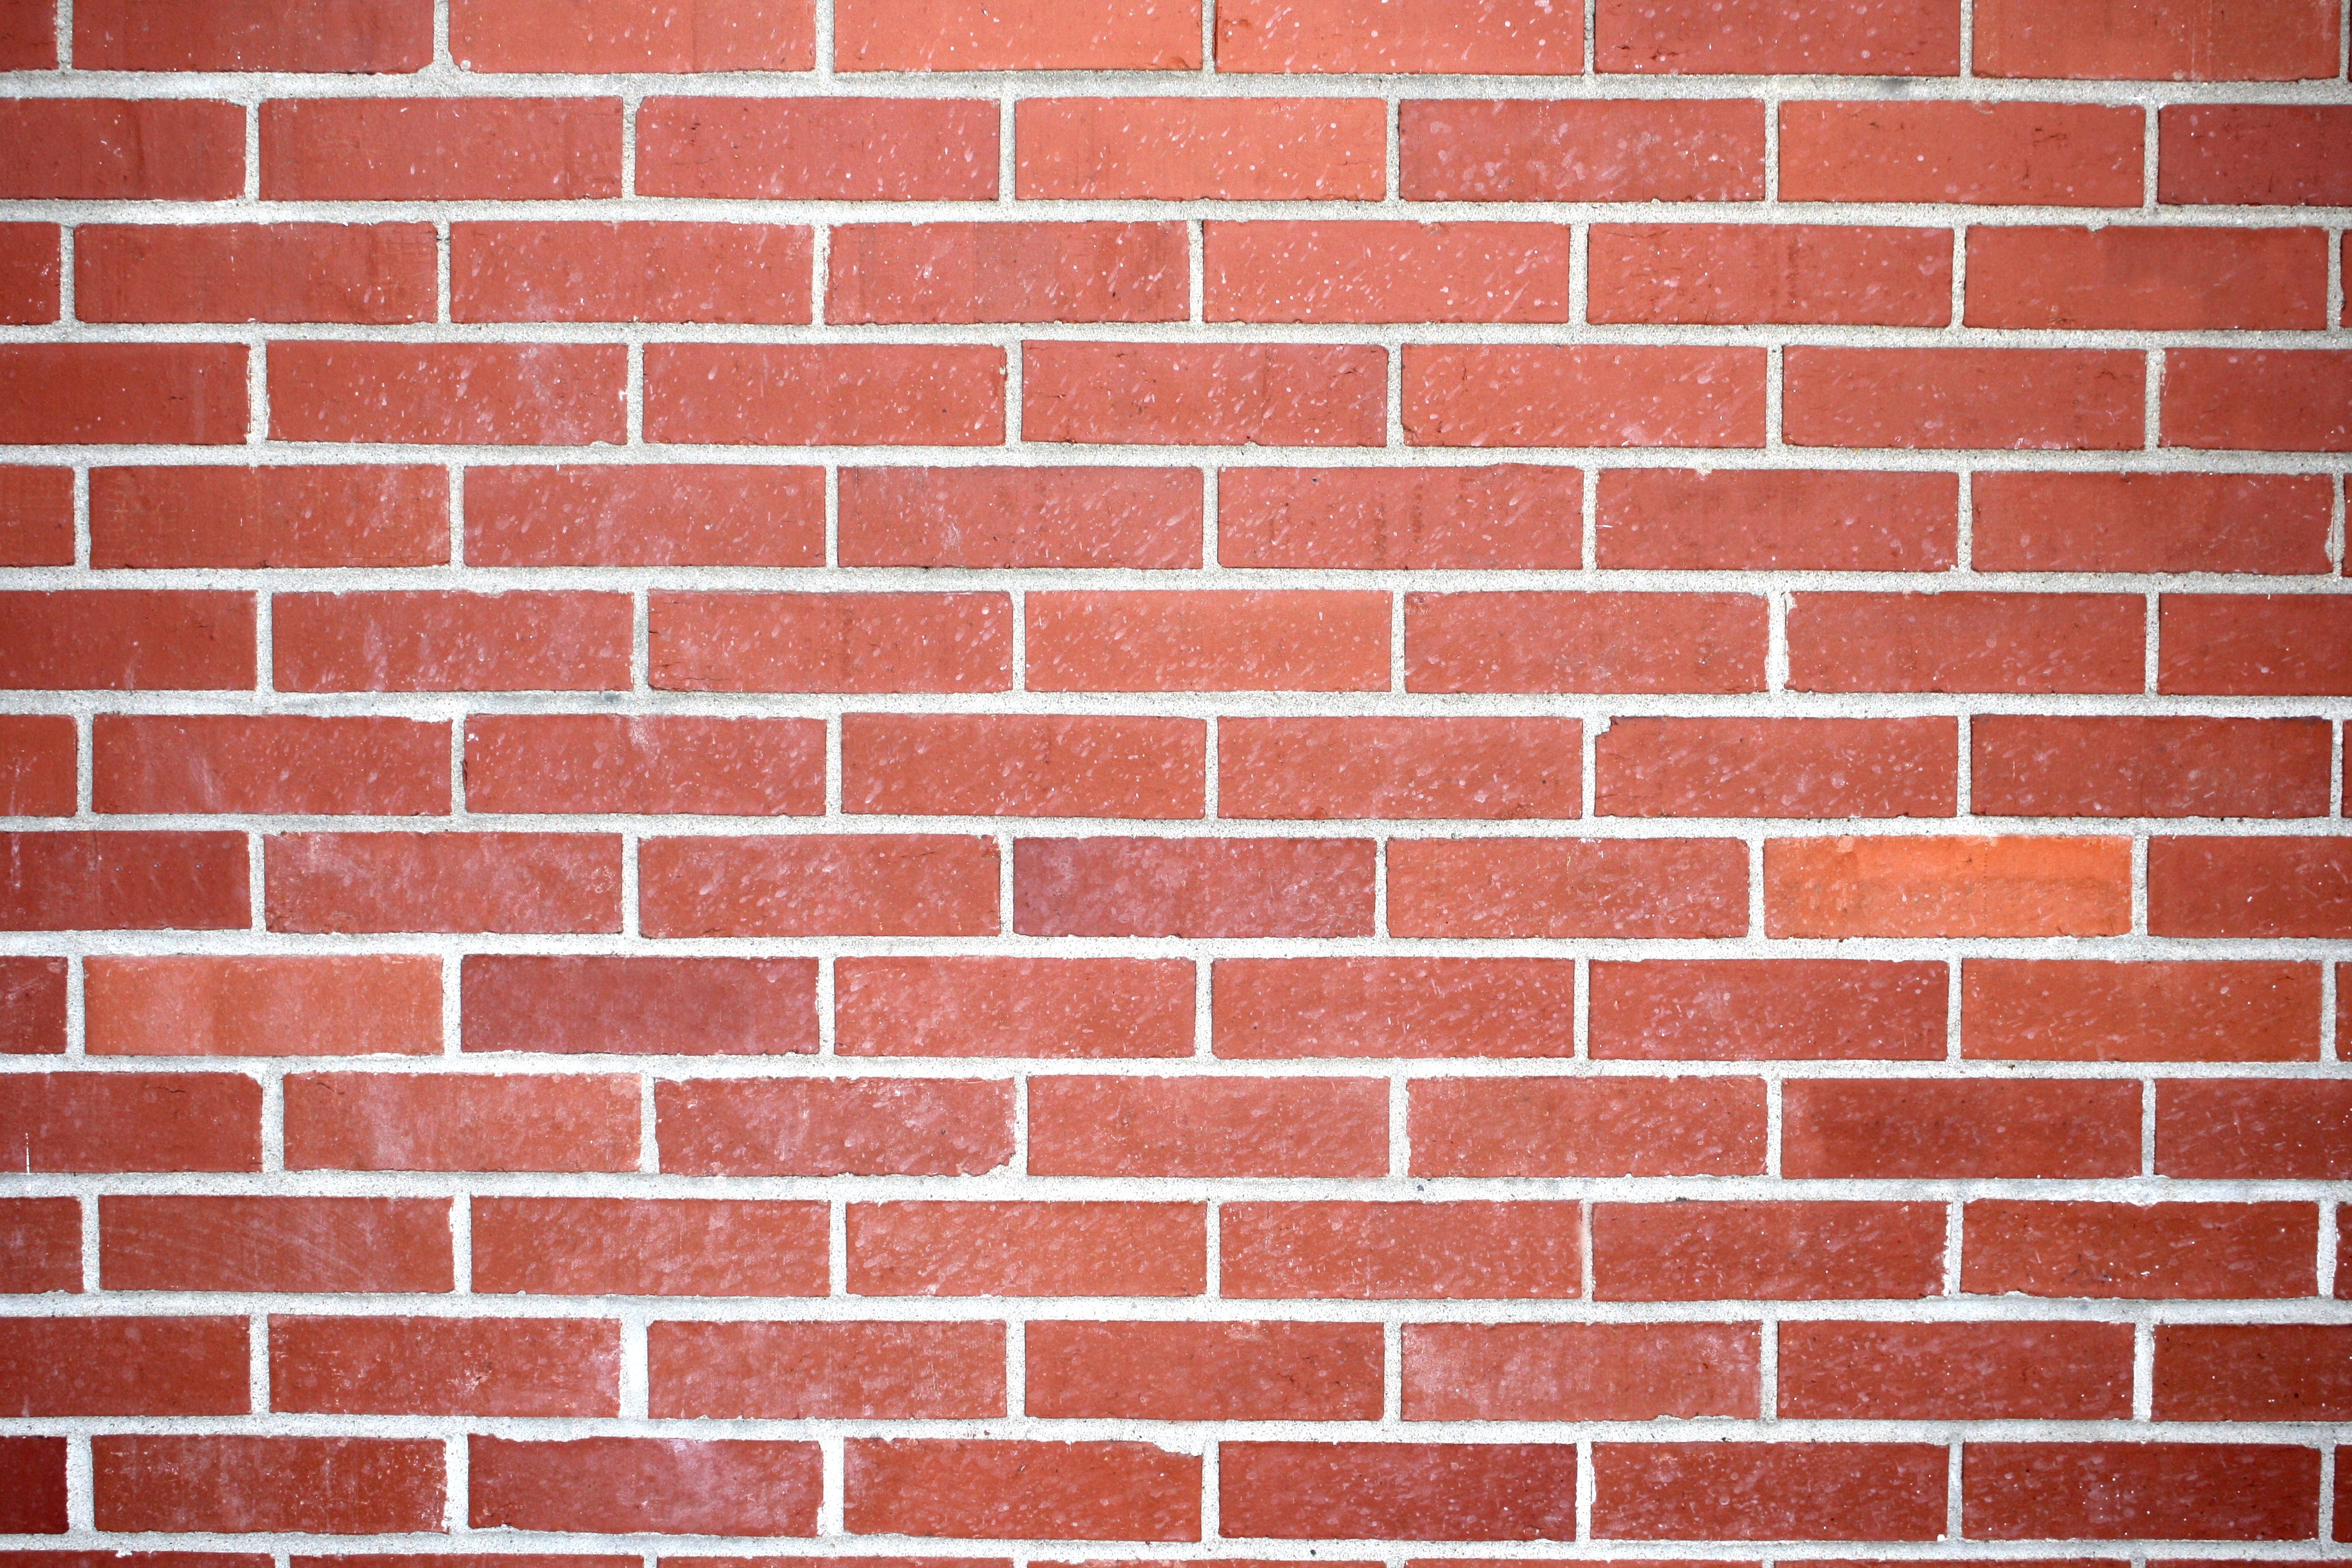 Free Brick Wall Cliparts, Download Free Clip Art, Free Clip.